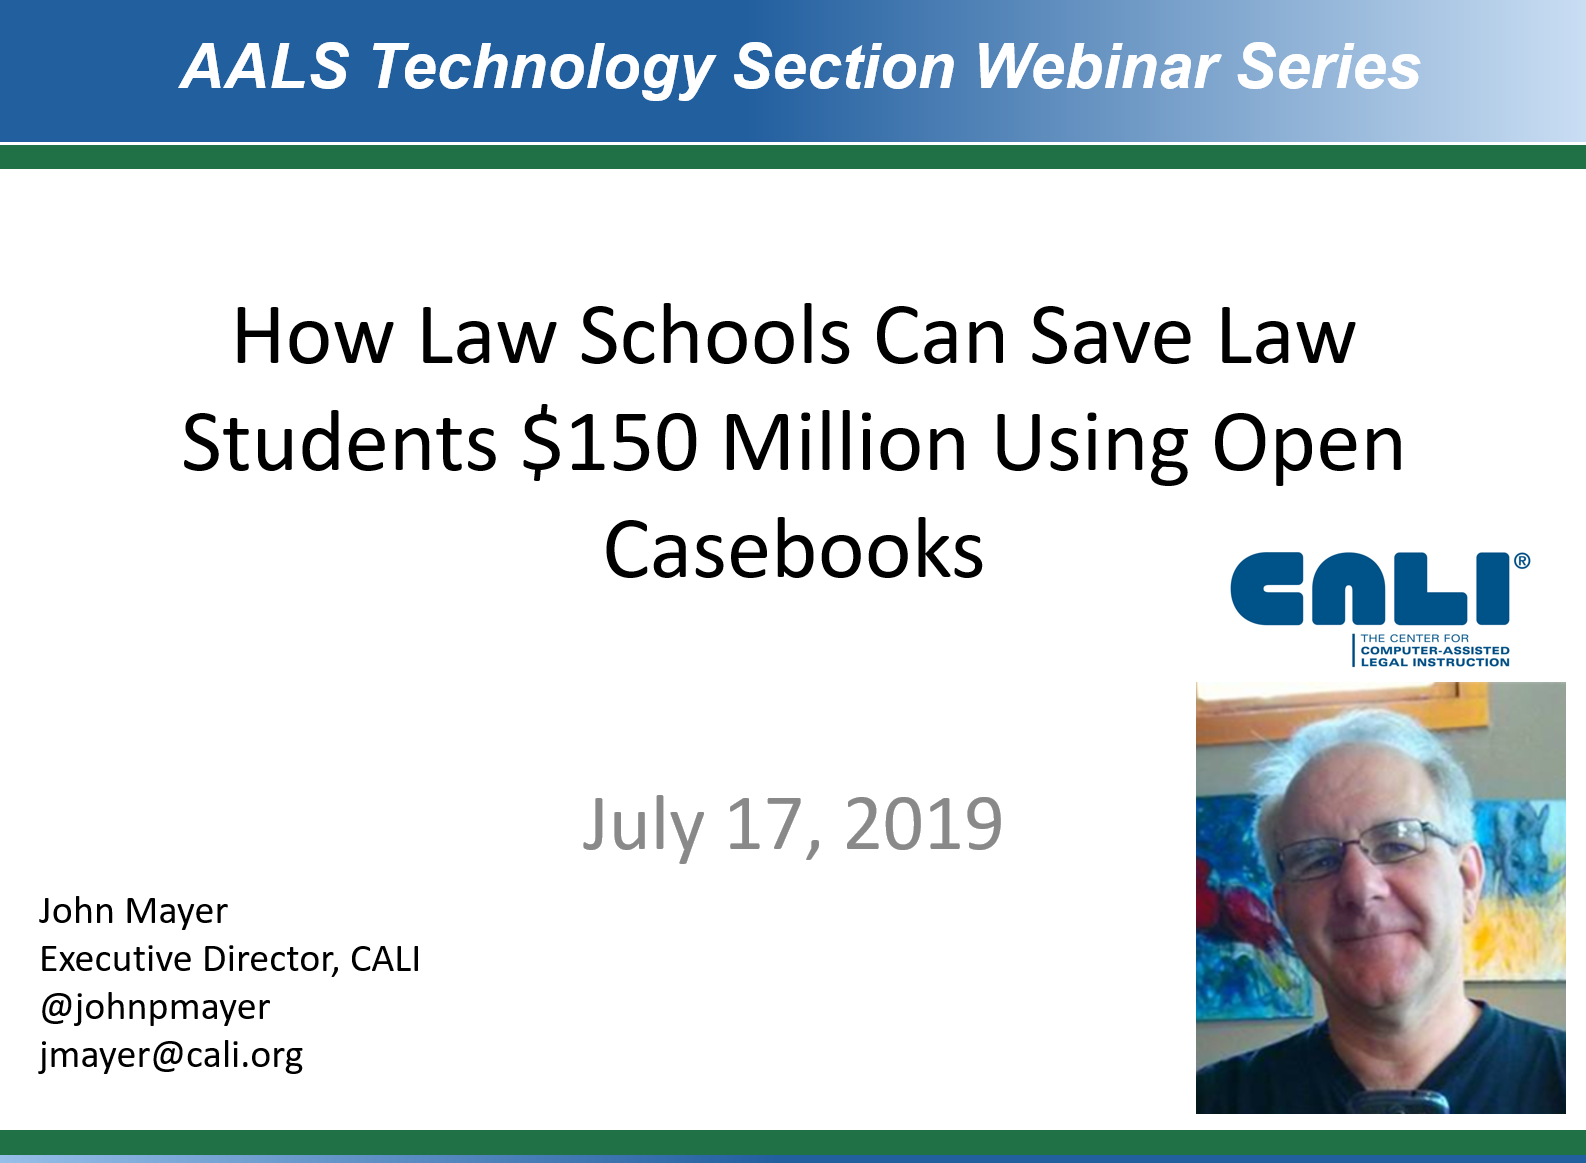 How law schools can save $150M